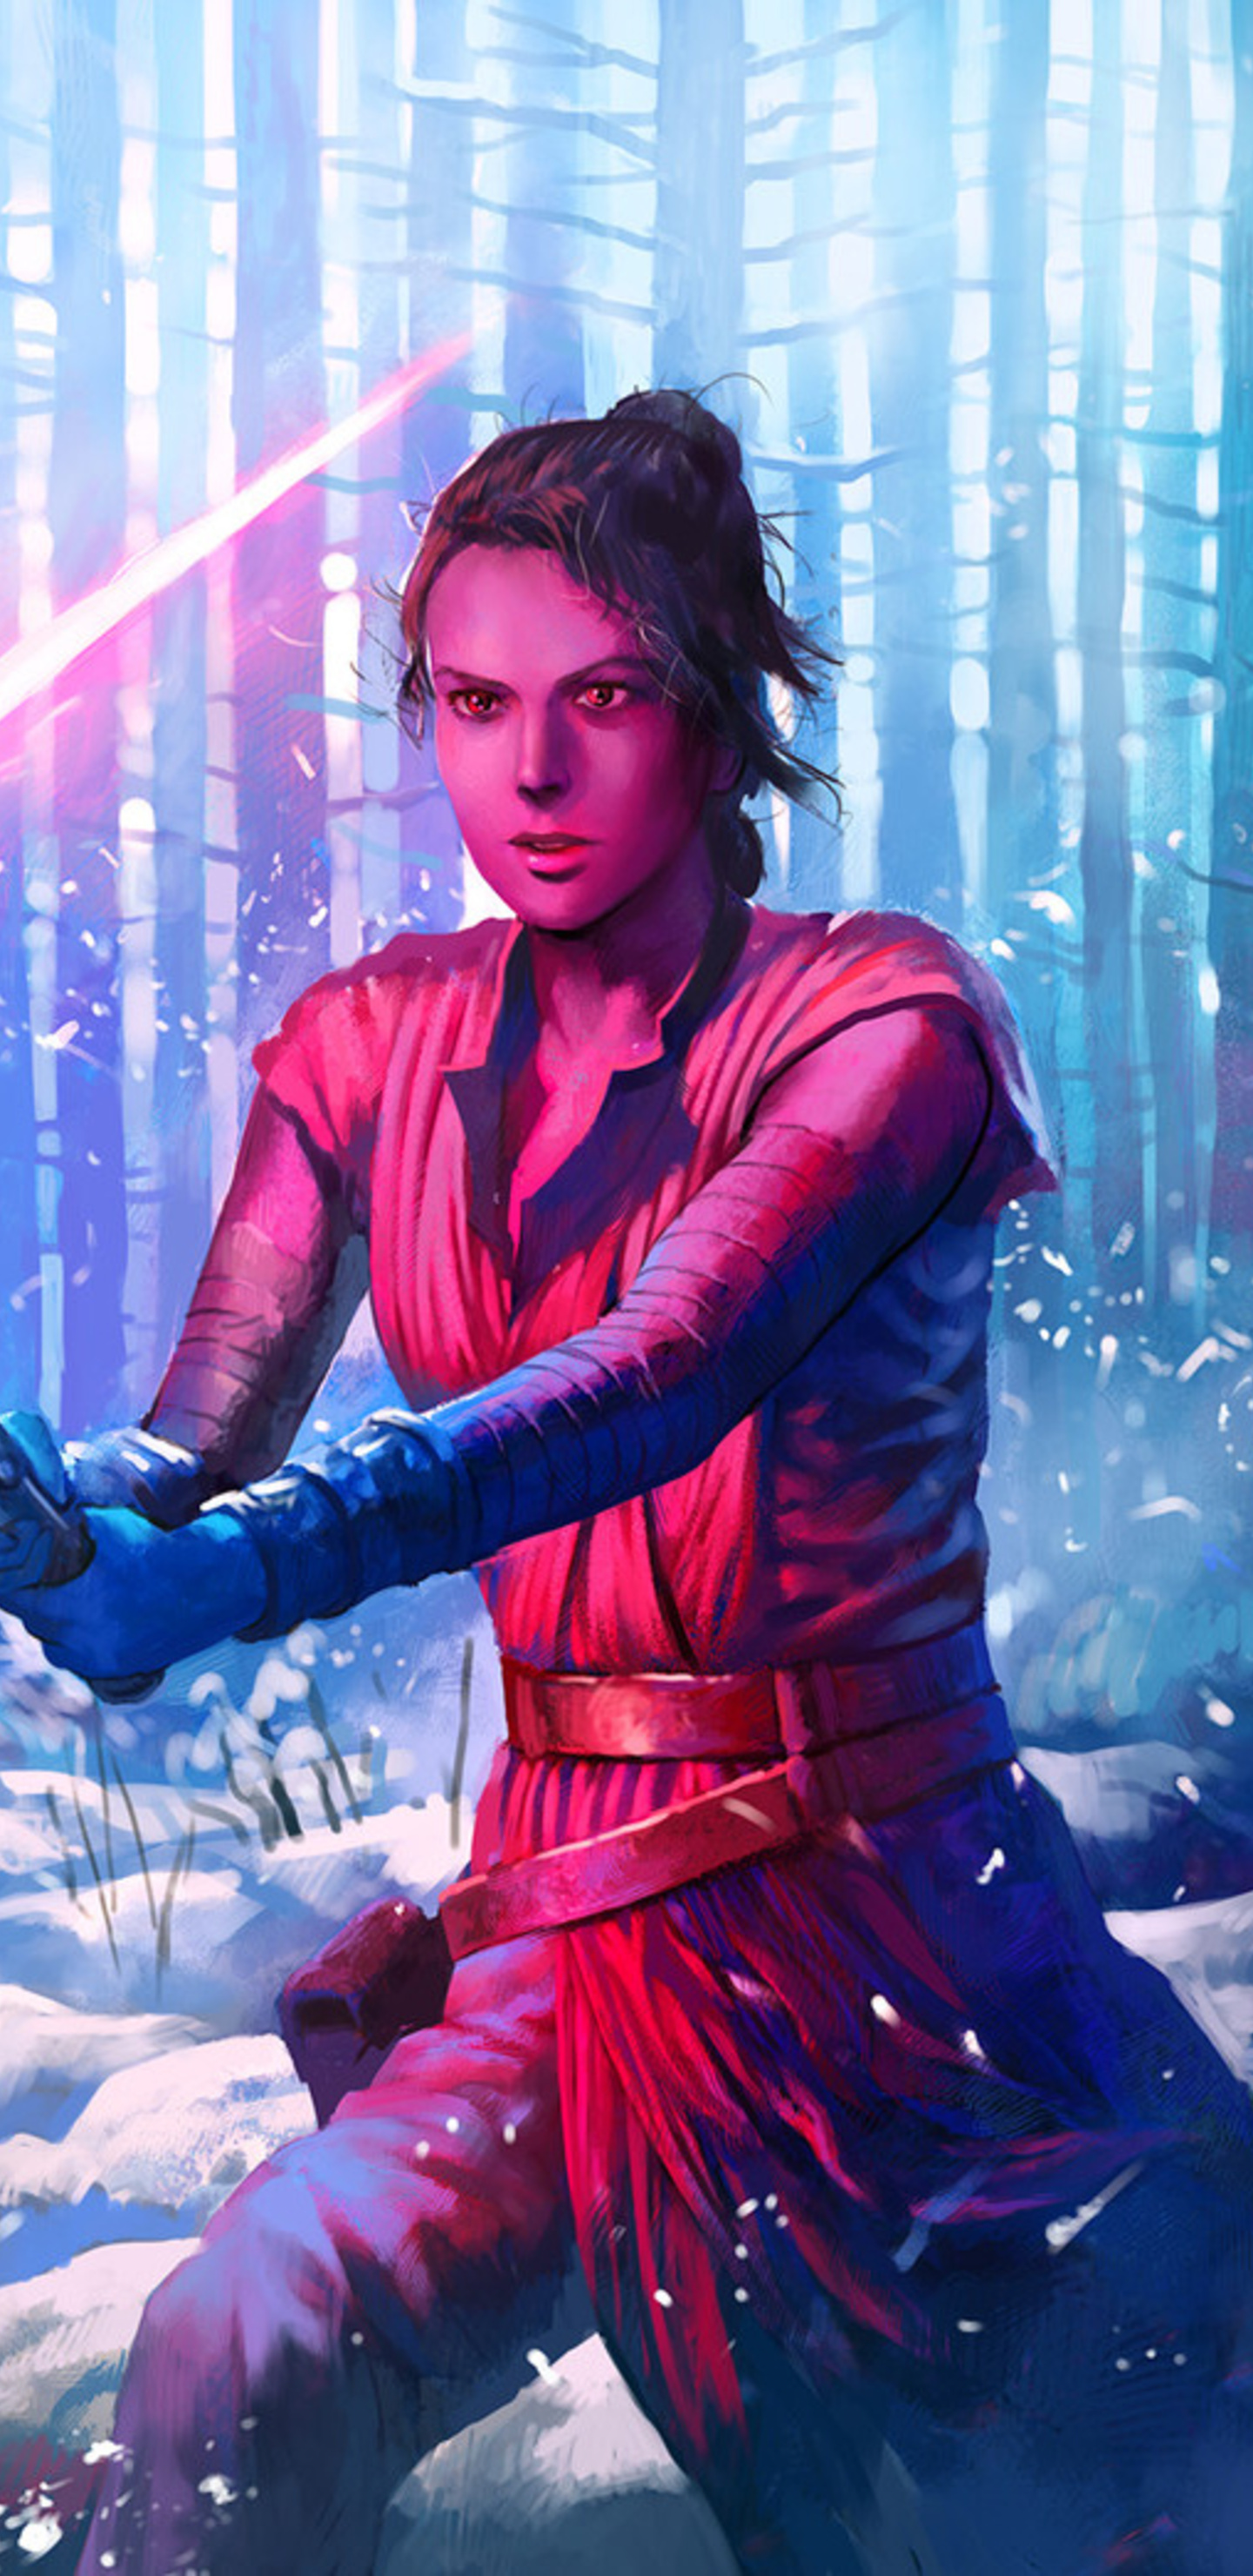 rey-and-kylo-ren-art-d7.jpg